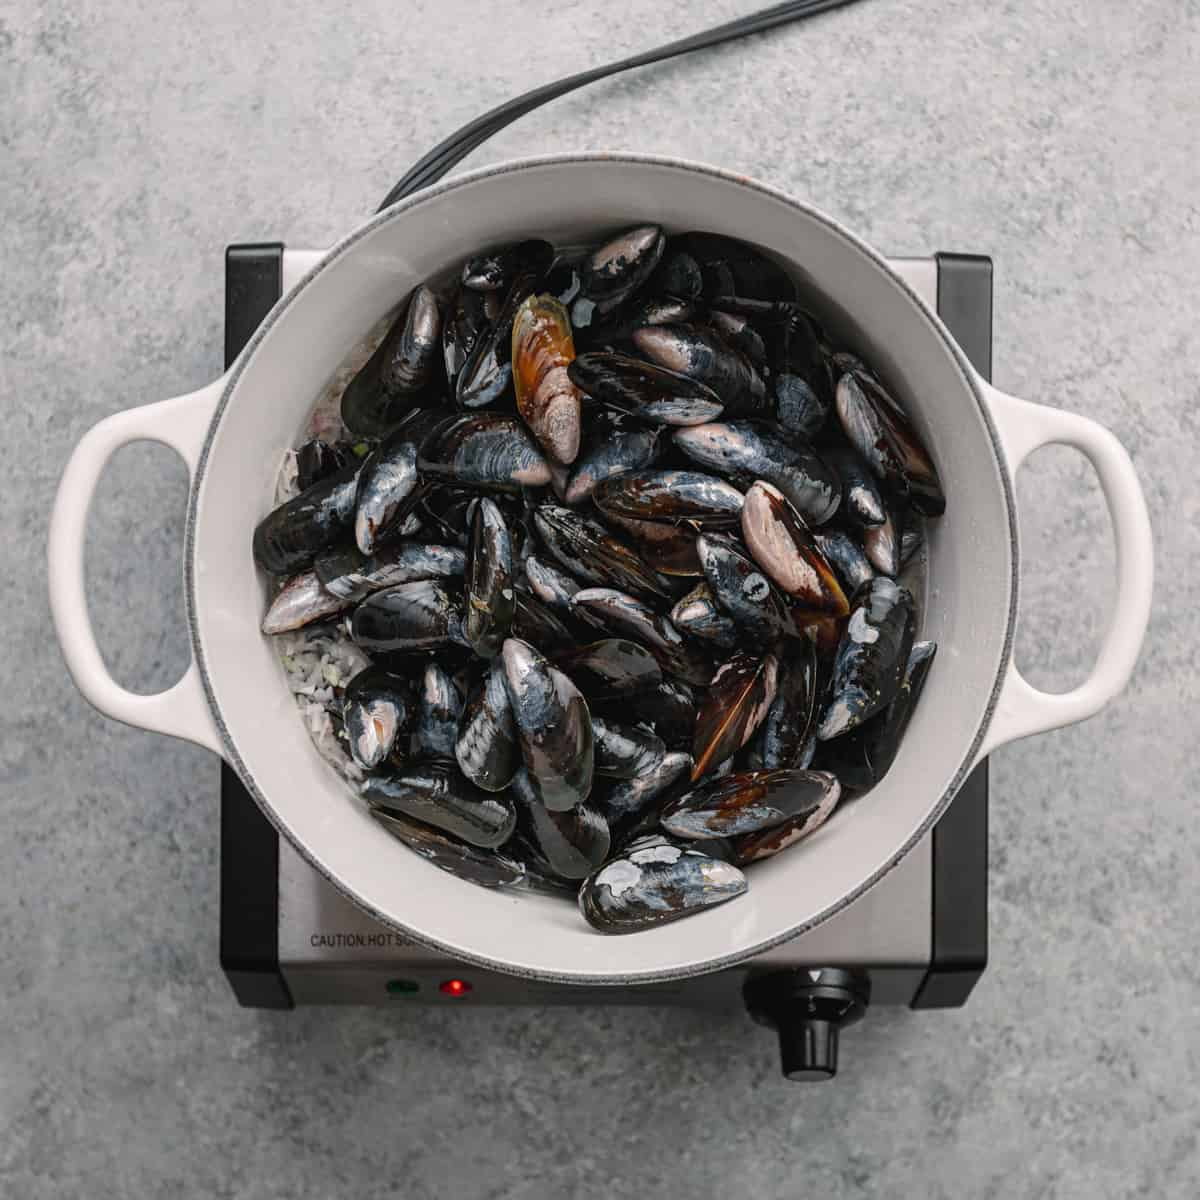 How to make mussels stock.